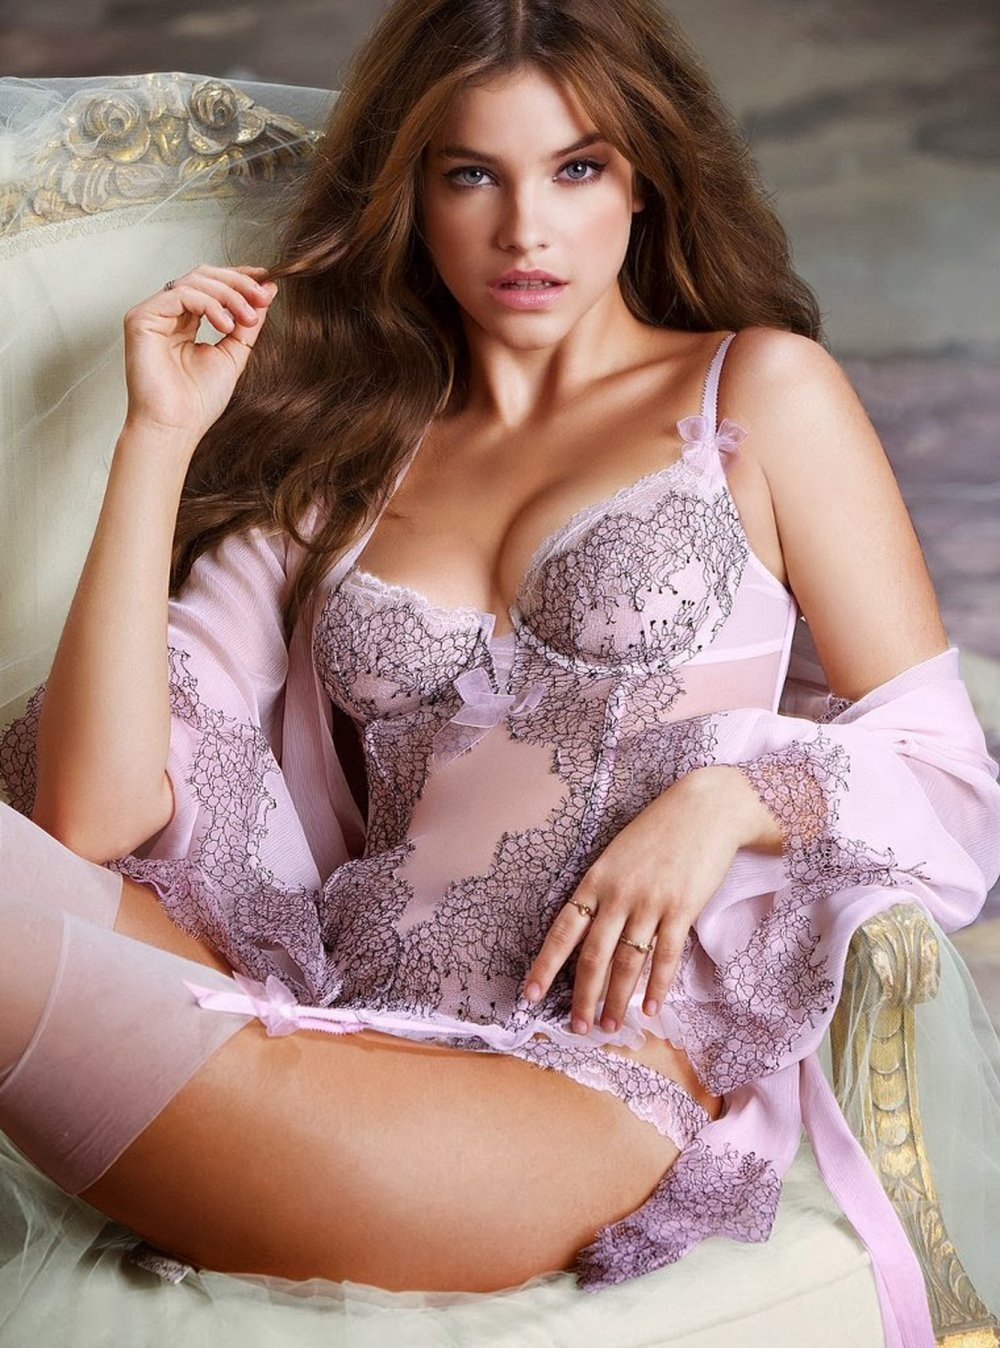 hot women in lingerie